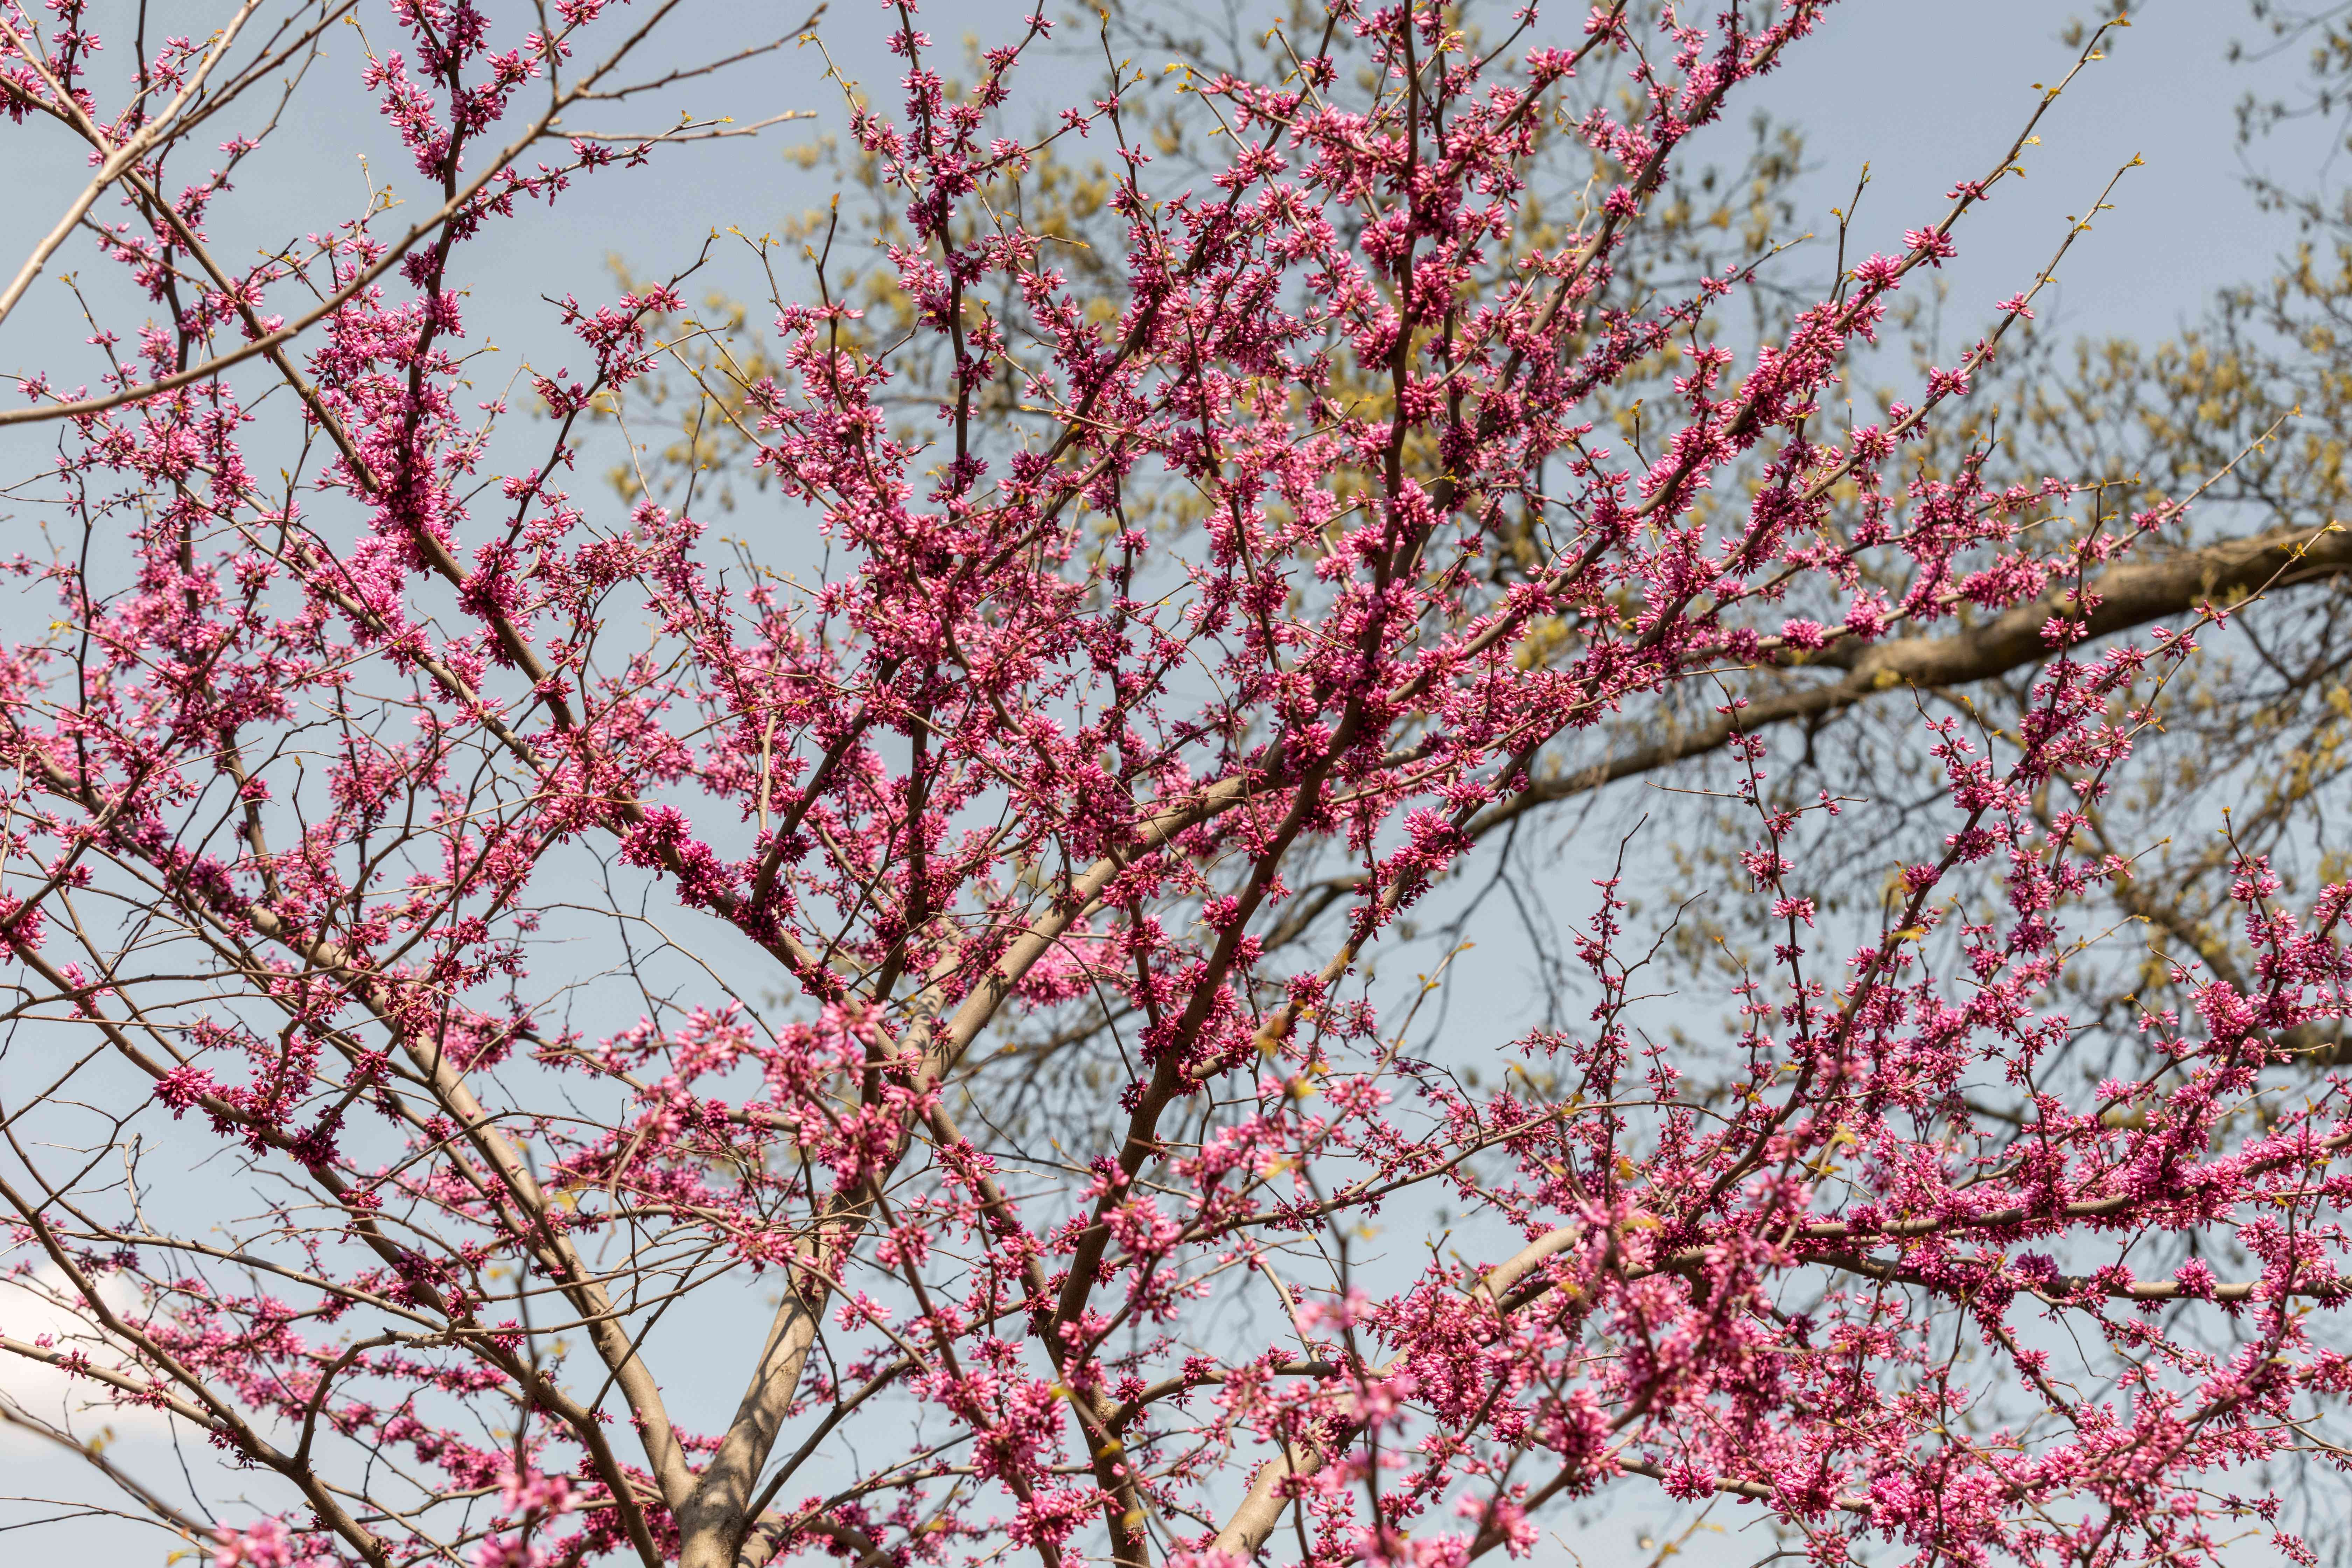 Eastern redbud tree with pinkish-purple flowers on long bare branches